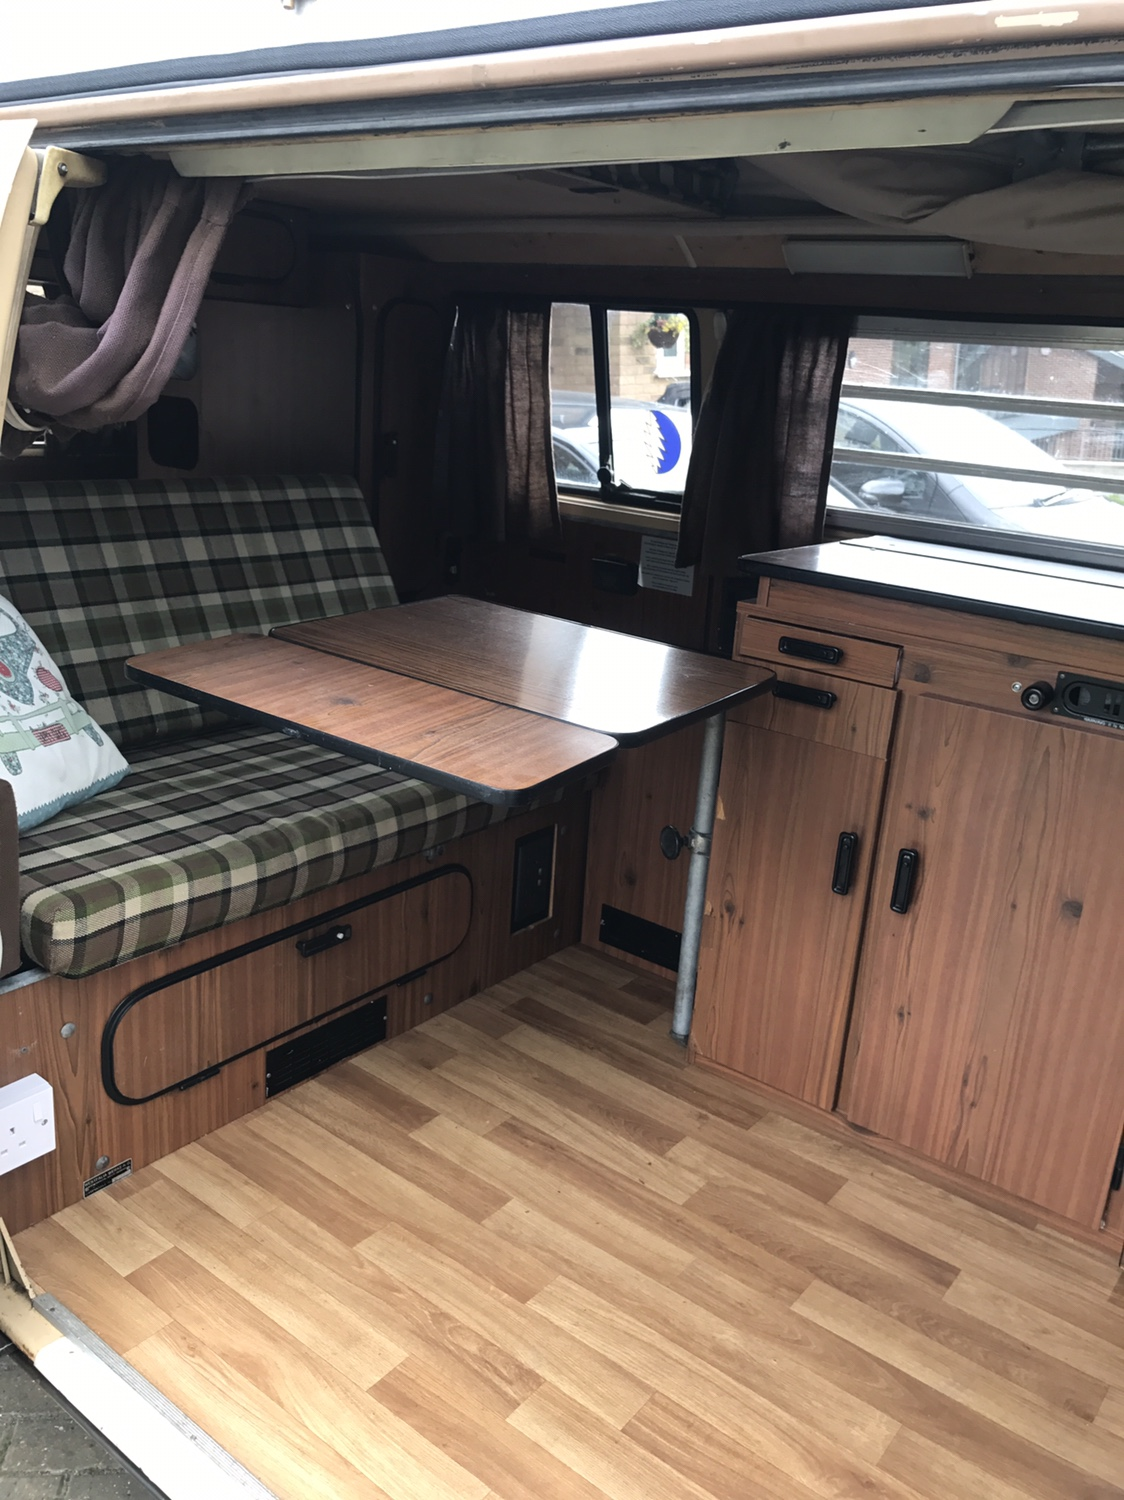 FOR SALE - Automatic Westfalia Berlin lhd | The Late Bay